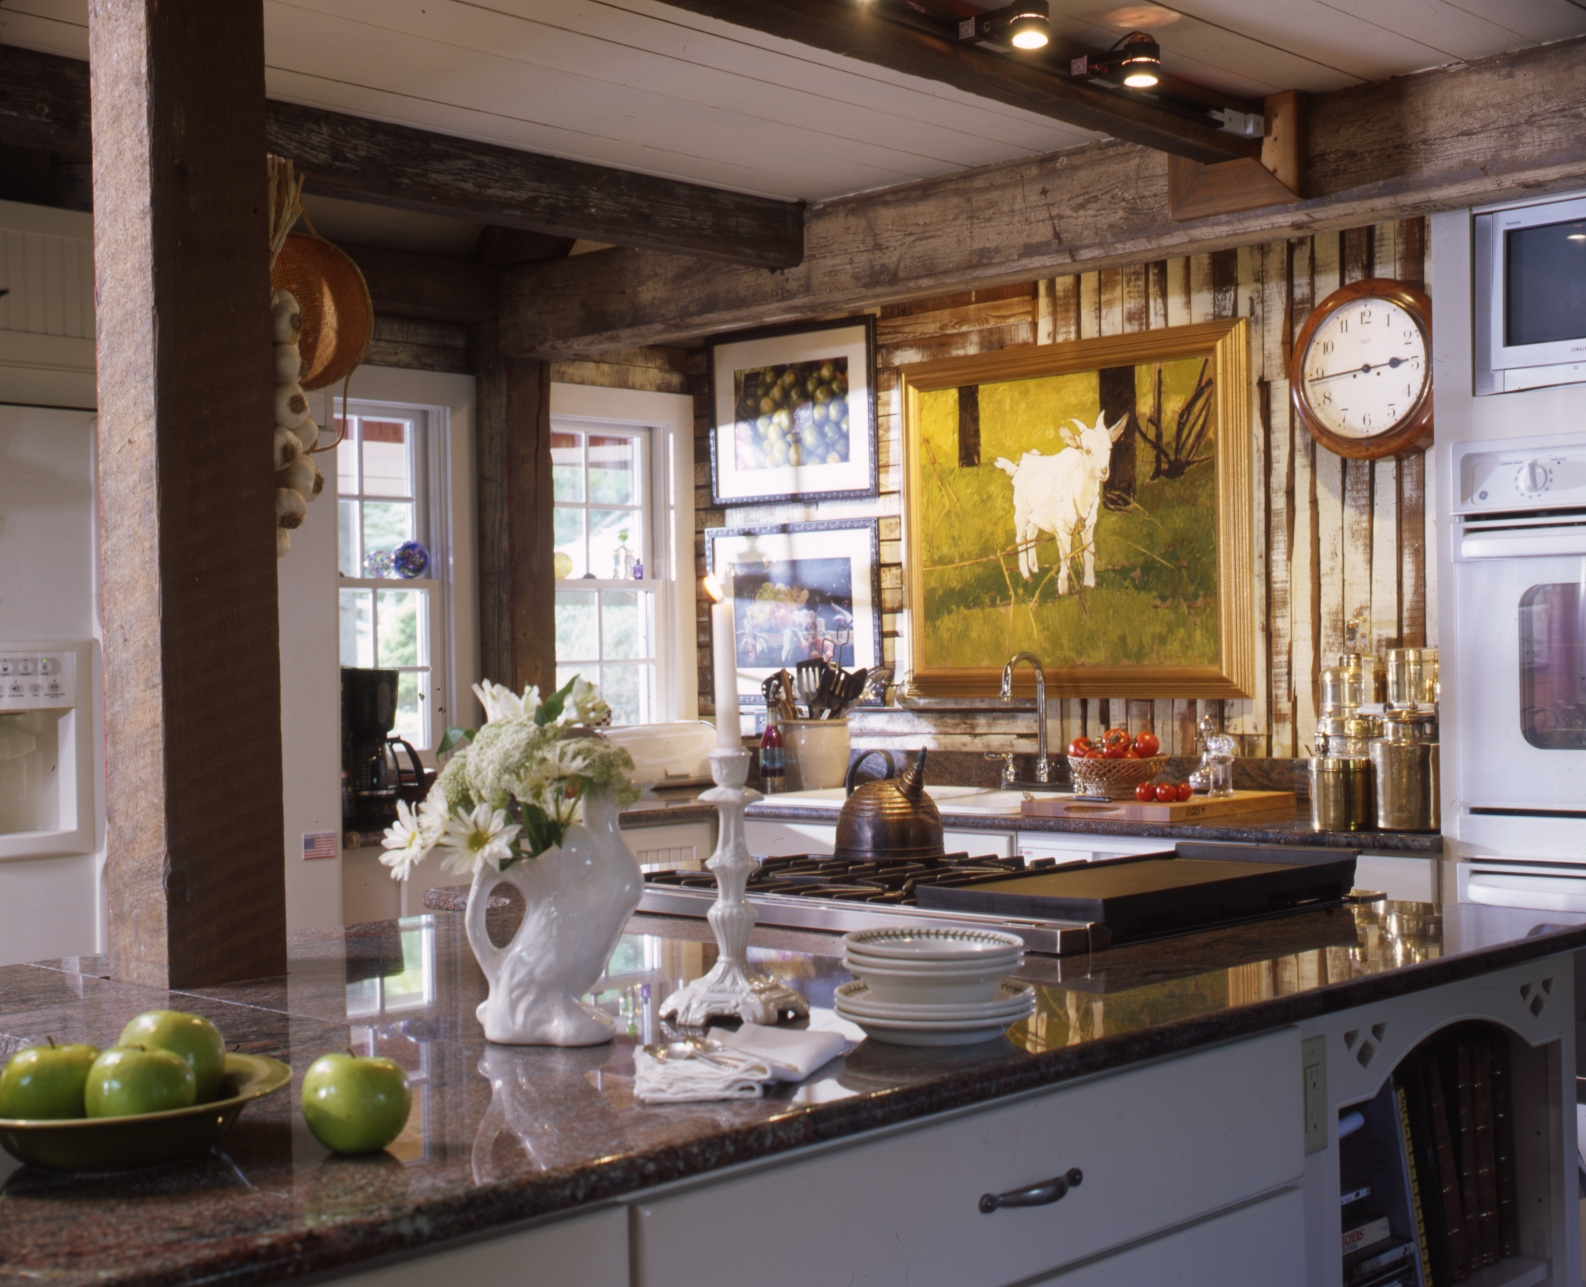 Modern French Country Kitchen Images Of French Country Kitchens Kids Art Decorating Ideas